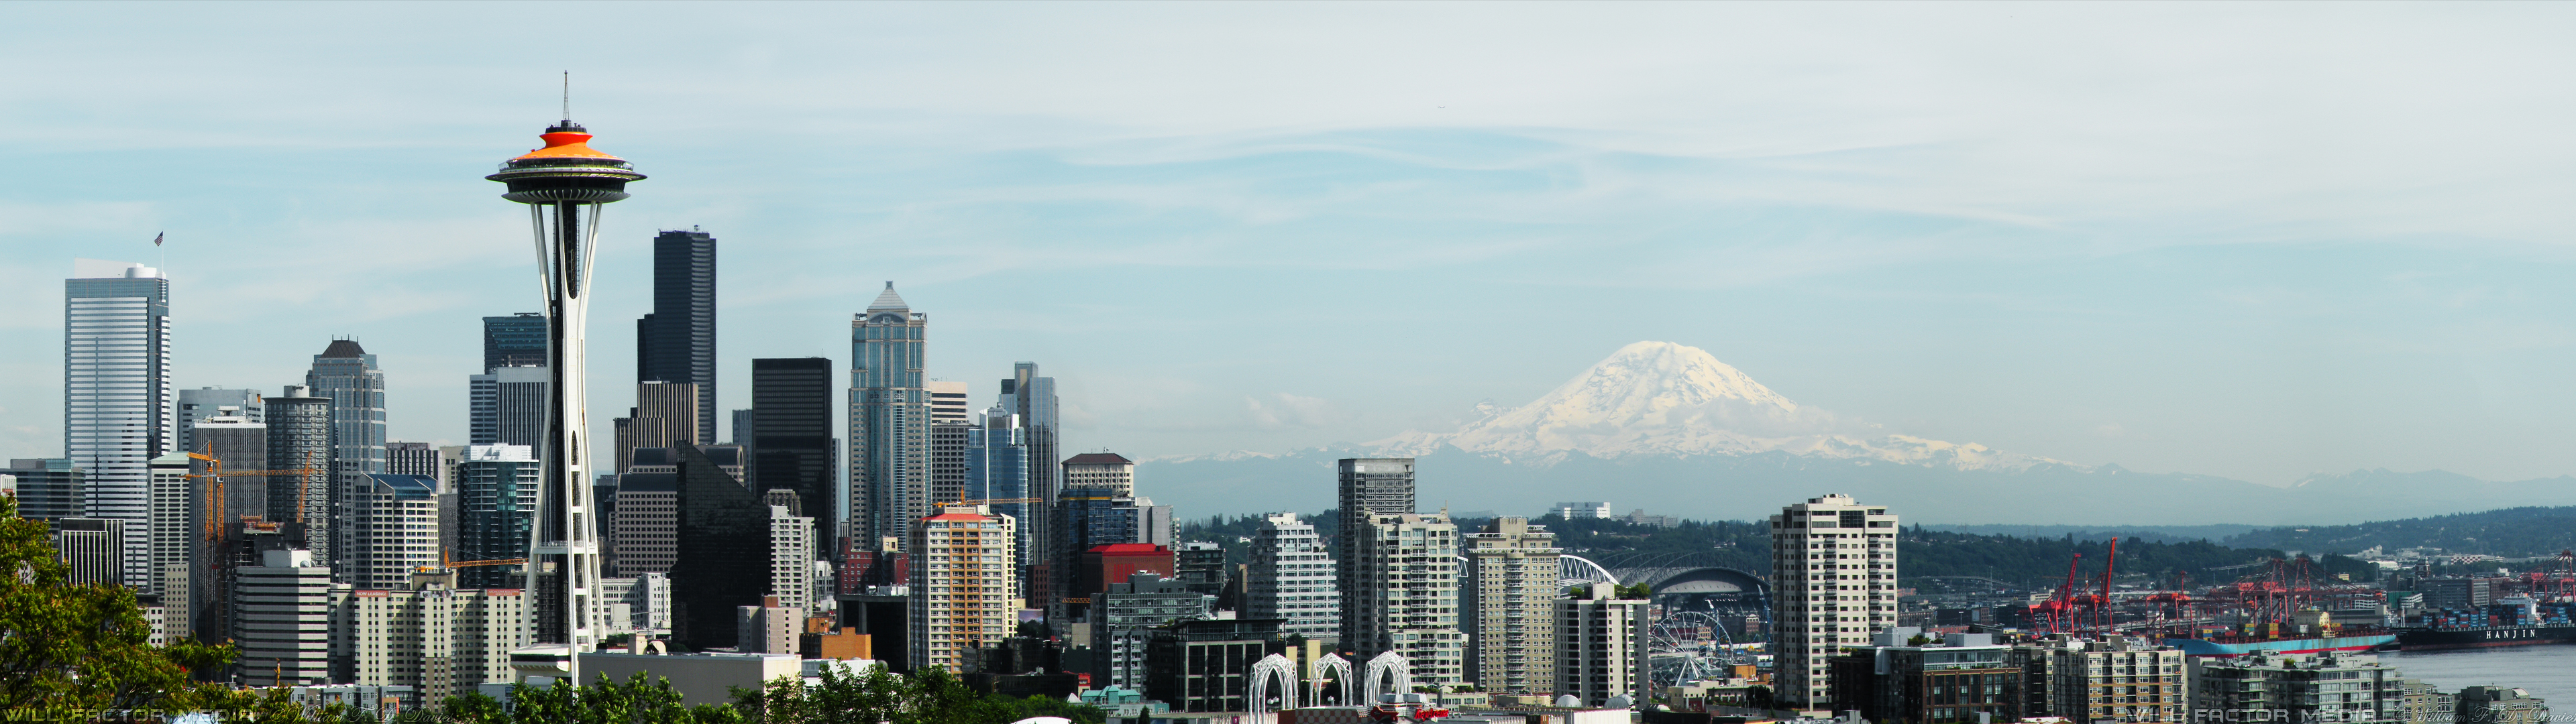 Dual Monitor 3840x1080 Seattle Wallpaper by WillFactorMedia on 3840x1080